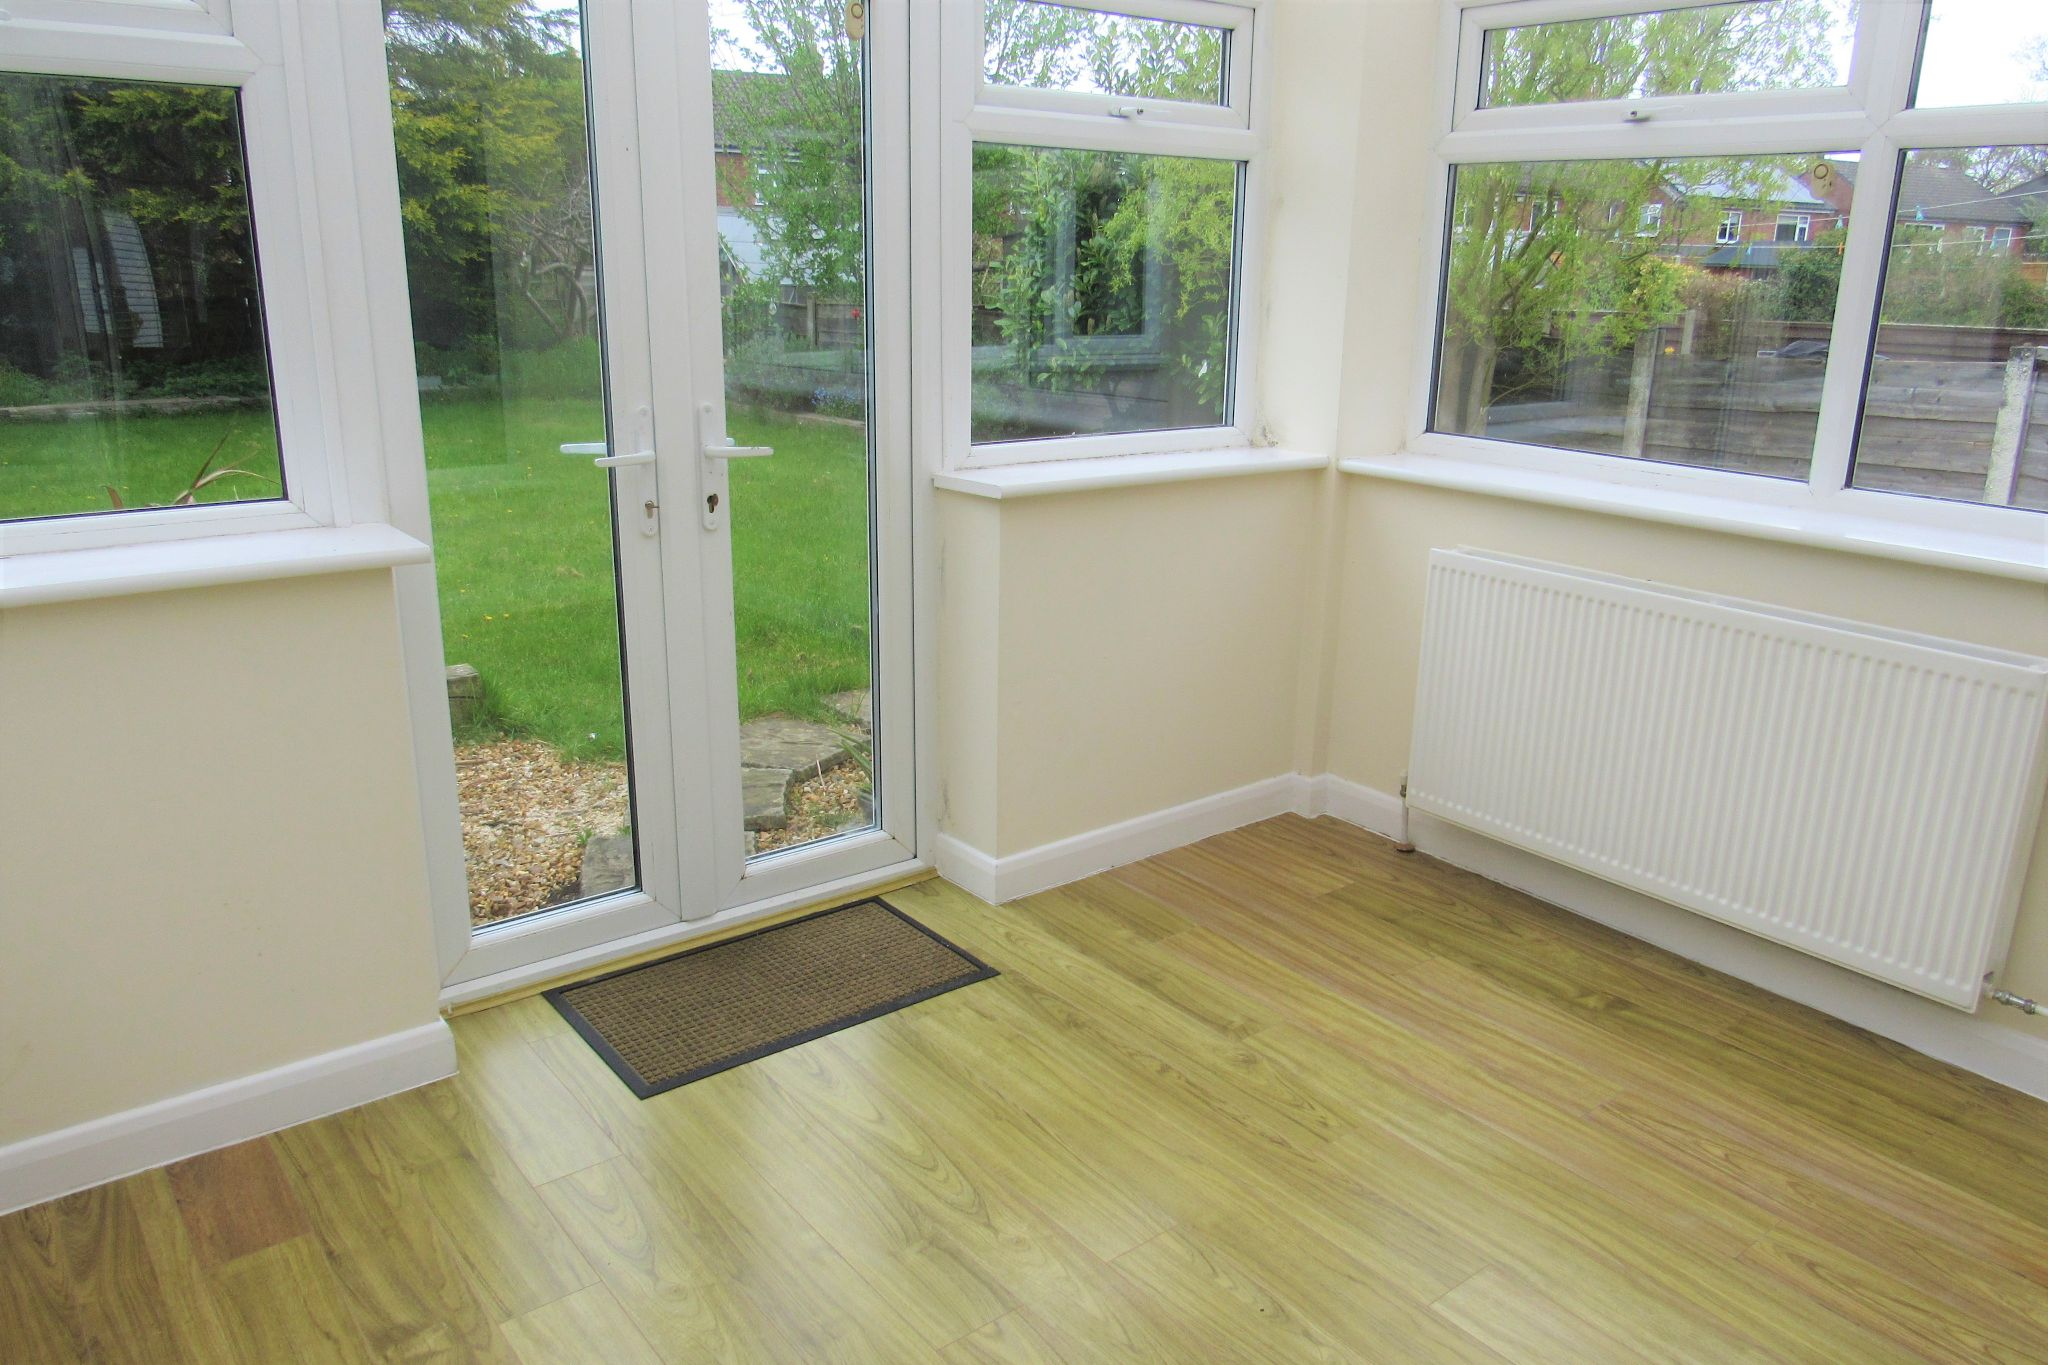 3 bedroom detached house For Sale in Manchester - Photograph 6.